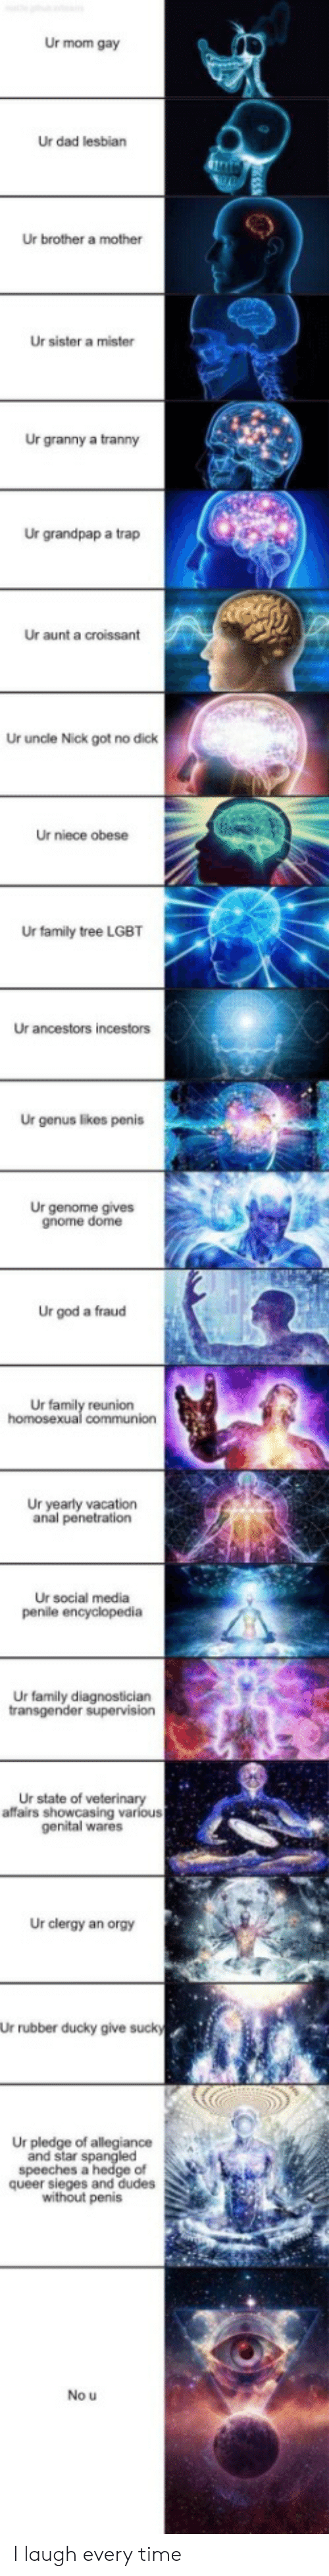 homosexual: Ur mom gay  Ur dad lesbian  Ur brother a mother  Ur sister a mister  Ur granny a tranny  Ur grandpap a trap  Ur aunt a croissant  Ur uncle Nick got no dick  Ur niece obese  Ur family tree LGBT  Ur ancestors incestors  Ur genus likes penis  Ur genome gives  gnome dome  Ur god a fraud  Ur family reunion  homosexual communion  Ur yearly vacation  anal penetration  Ur social media  penile encyclopedia  Ur family diagnostician  transgender supervision  Ur state of veterinary  affairs showcasing various  genital wares  Ur clergy an orgy  Ur rubber ducky give sucky  Ur pledge of allegiance  and star spangled  speeches a hedge of  queer sieges and dudes  without penis  No u I laugh every time